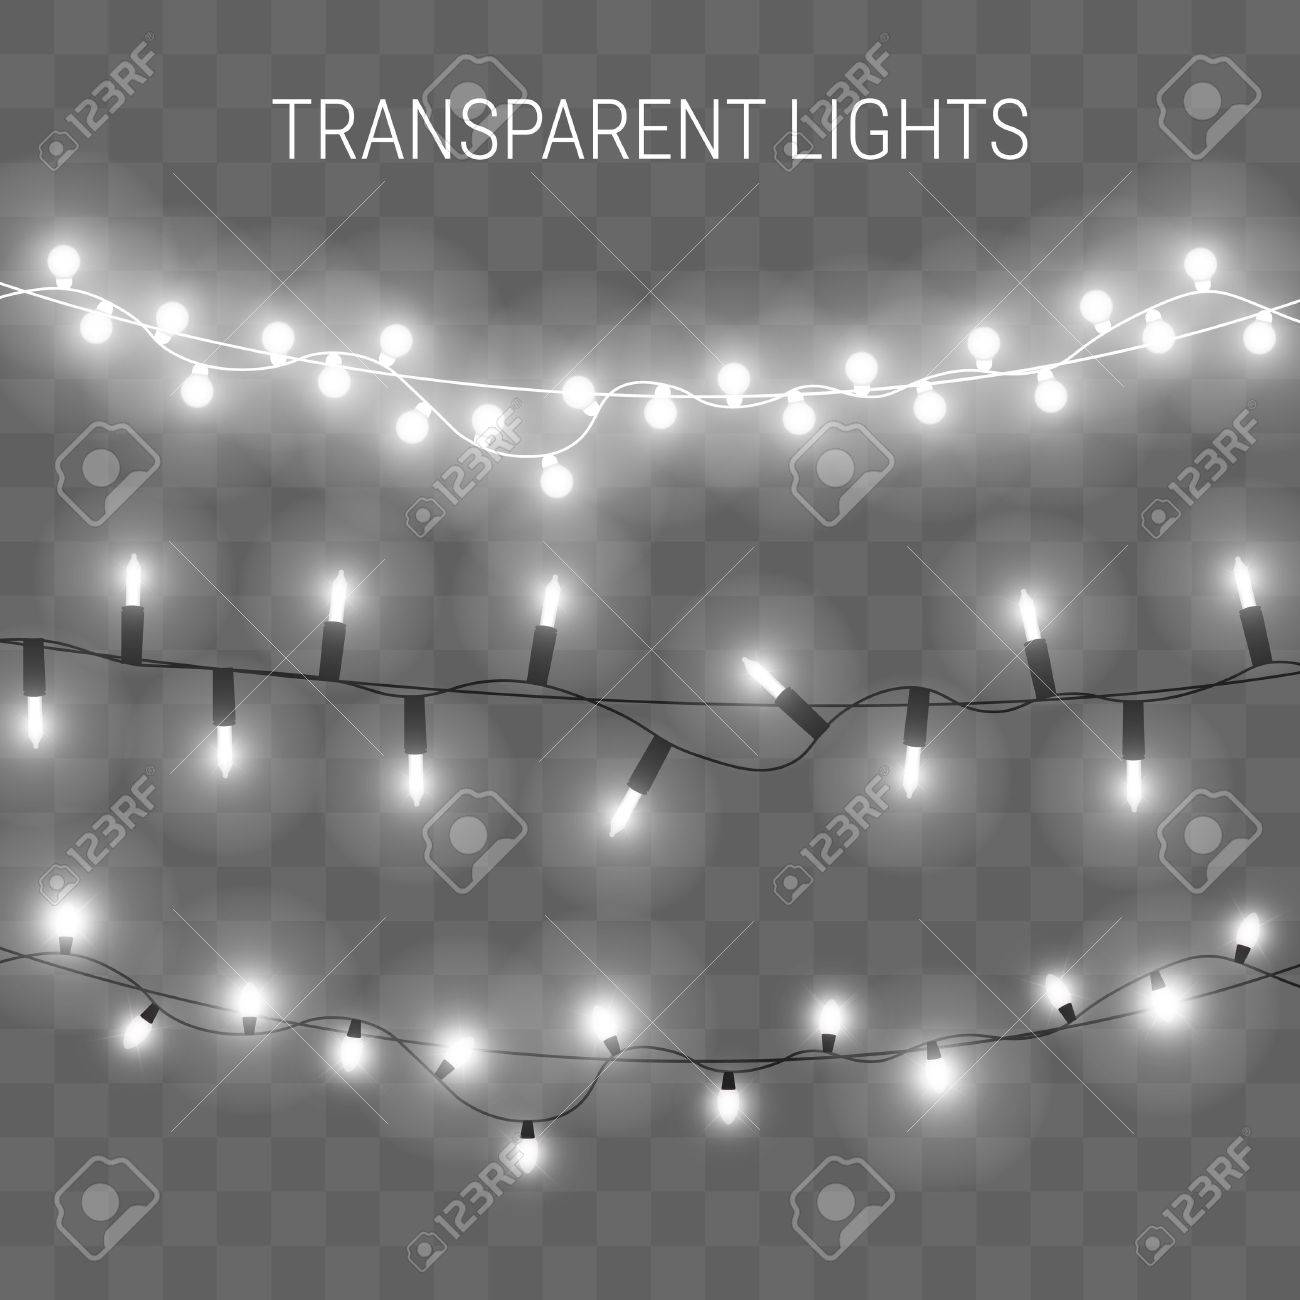 illustration of garland with bright lights. Transparent glowing light bulbs - 66754696